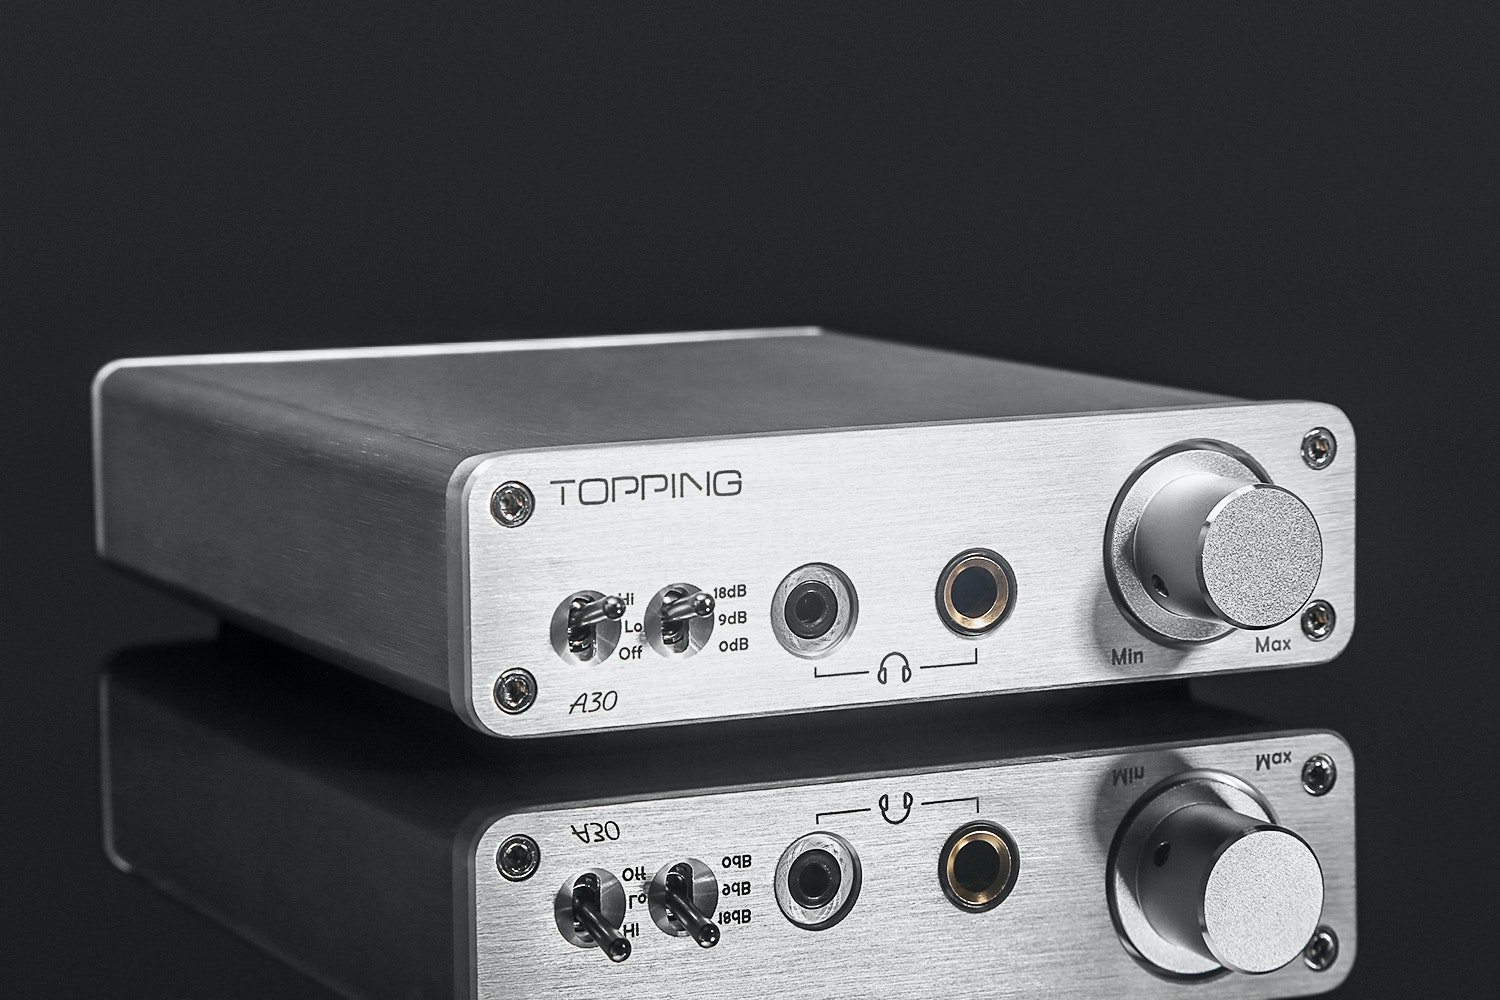 Topping D30 DAC, A30 Headphone Amp & PA3 Stereo Amp